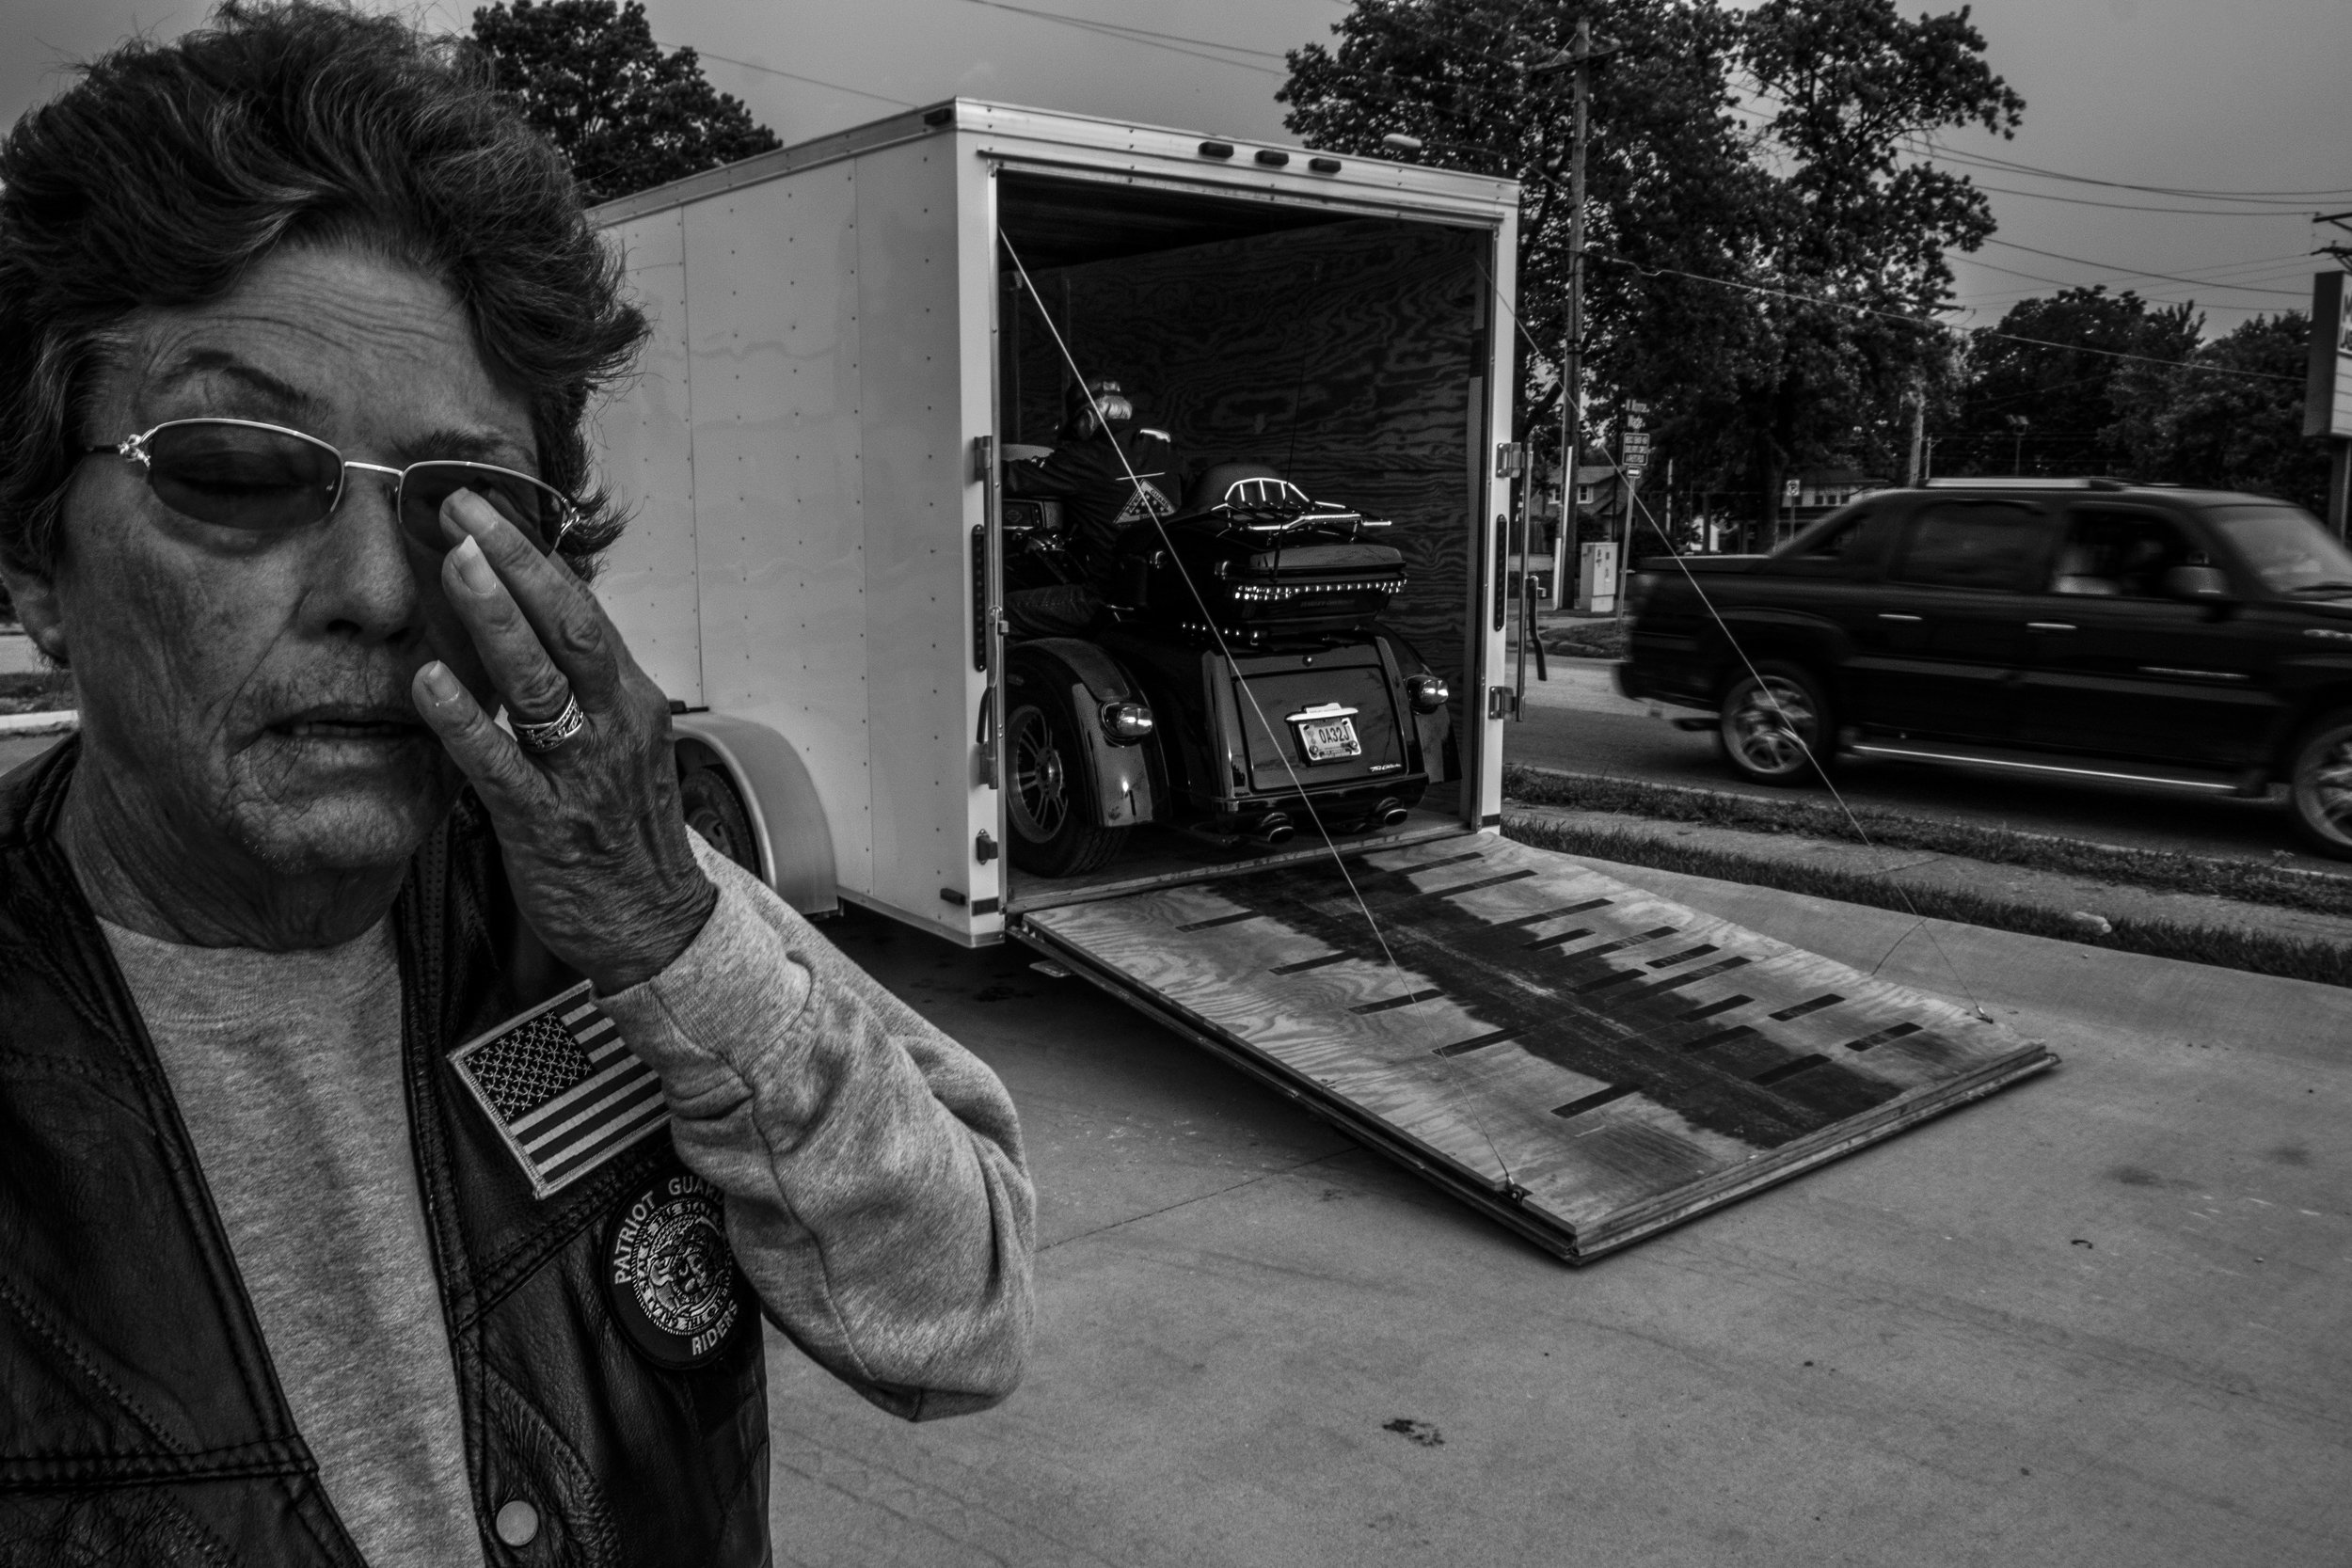 Patriot Guard Rider, Kay Walden, waits for her husband, Bill, to unload their motorcycle for an early morning ride around Mexico, Missouri on Friday, Jun. 21, 2019.